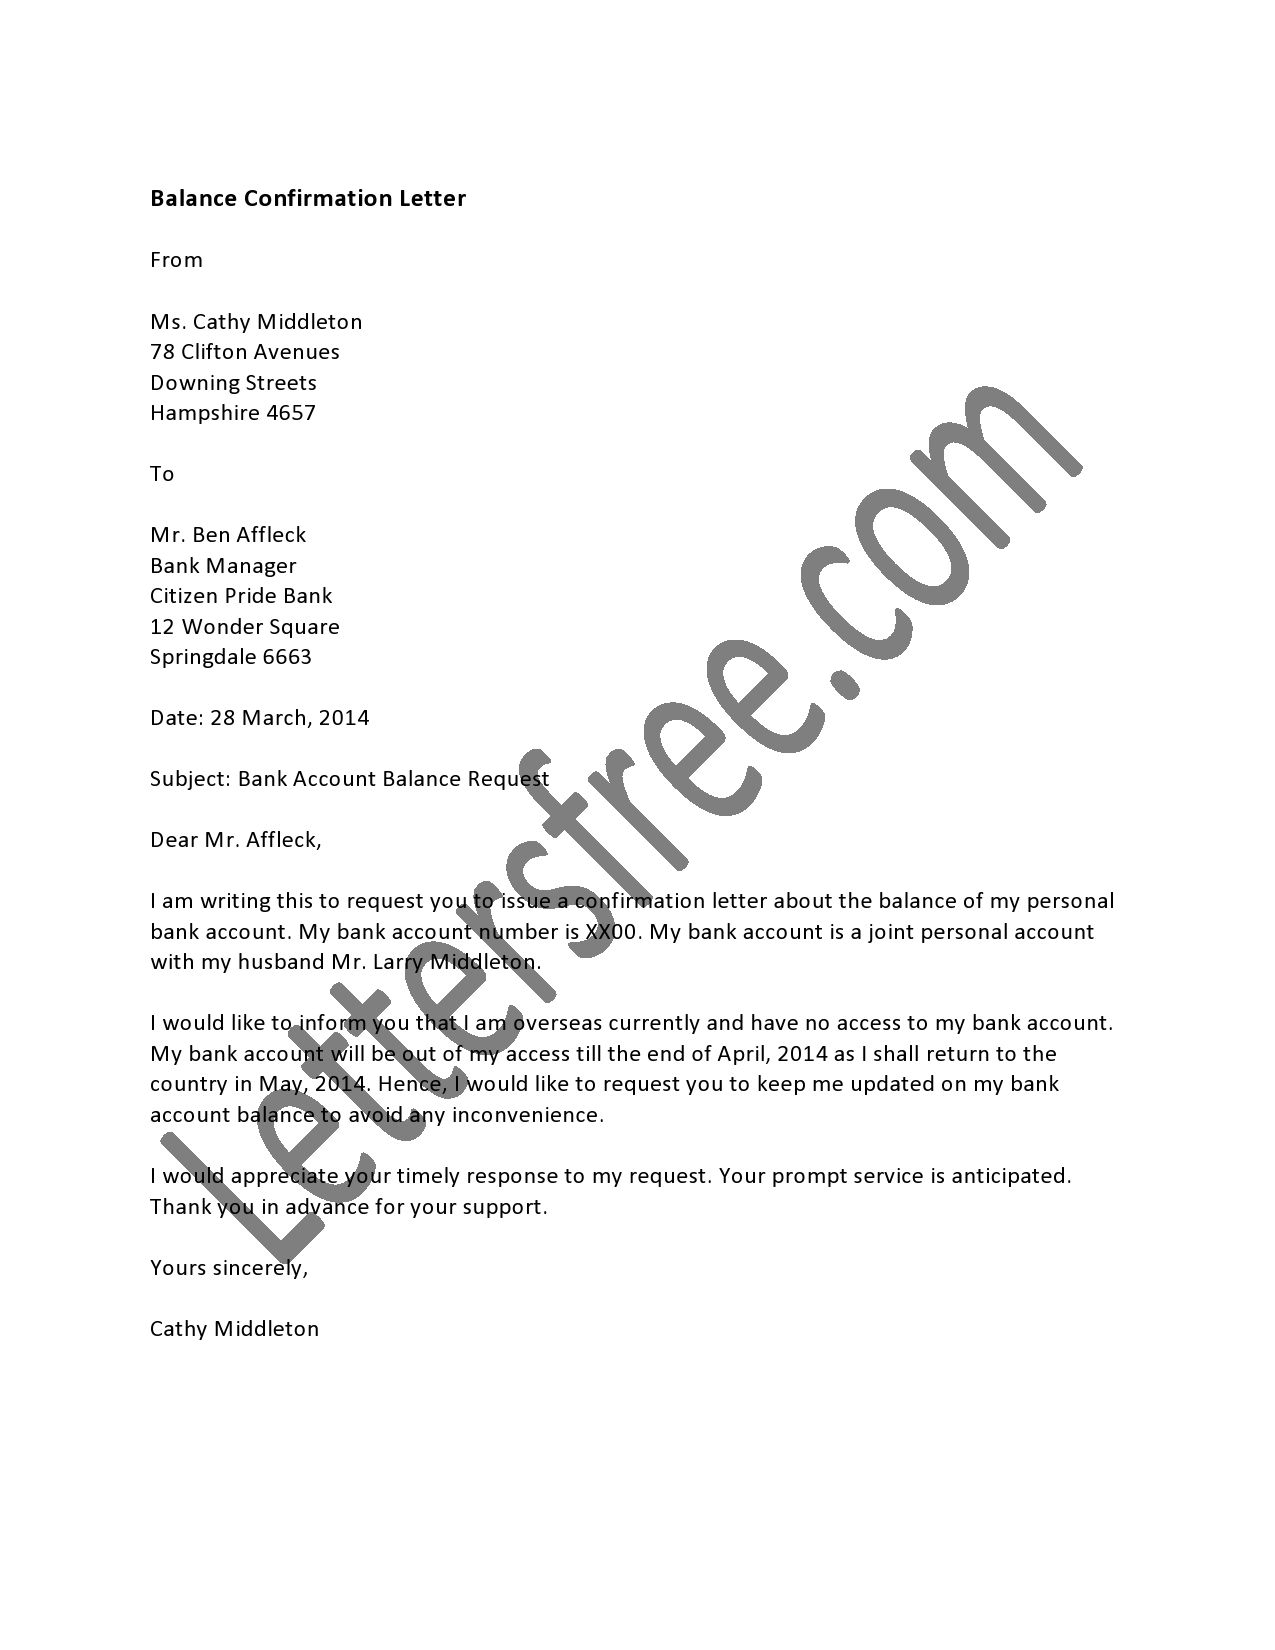 Balance confirmation letter format for the auditors and annual balance confirmation letter format for the auditors and annual audits balance confirmation from creditors and debtors spiritdancerdesigns